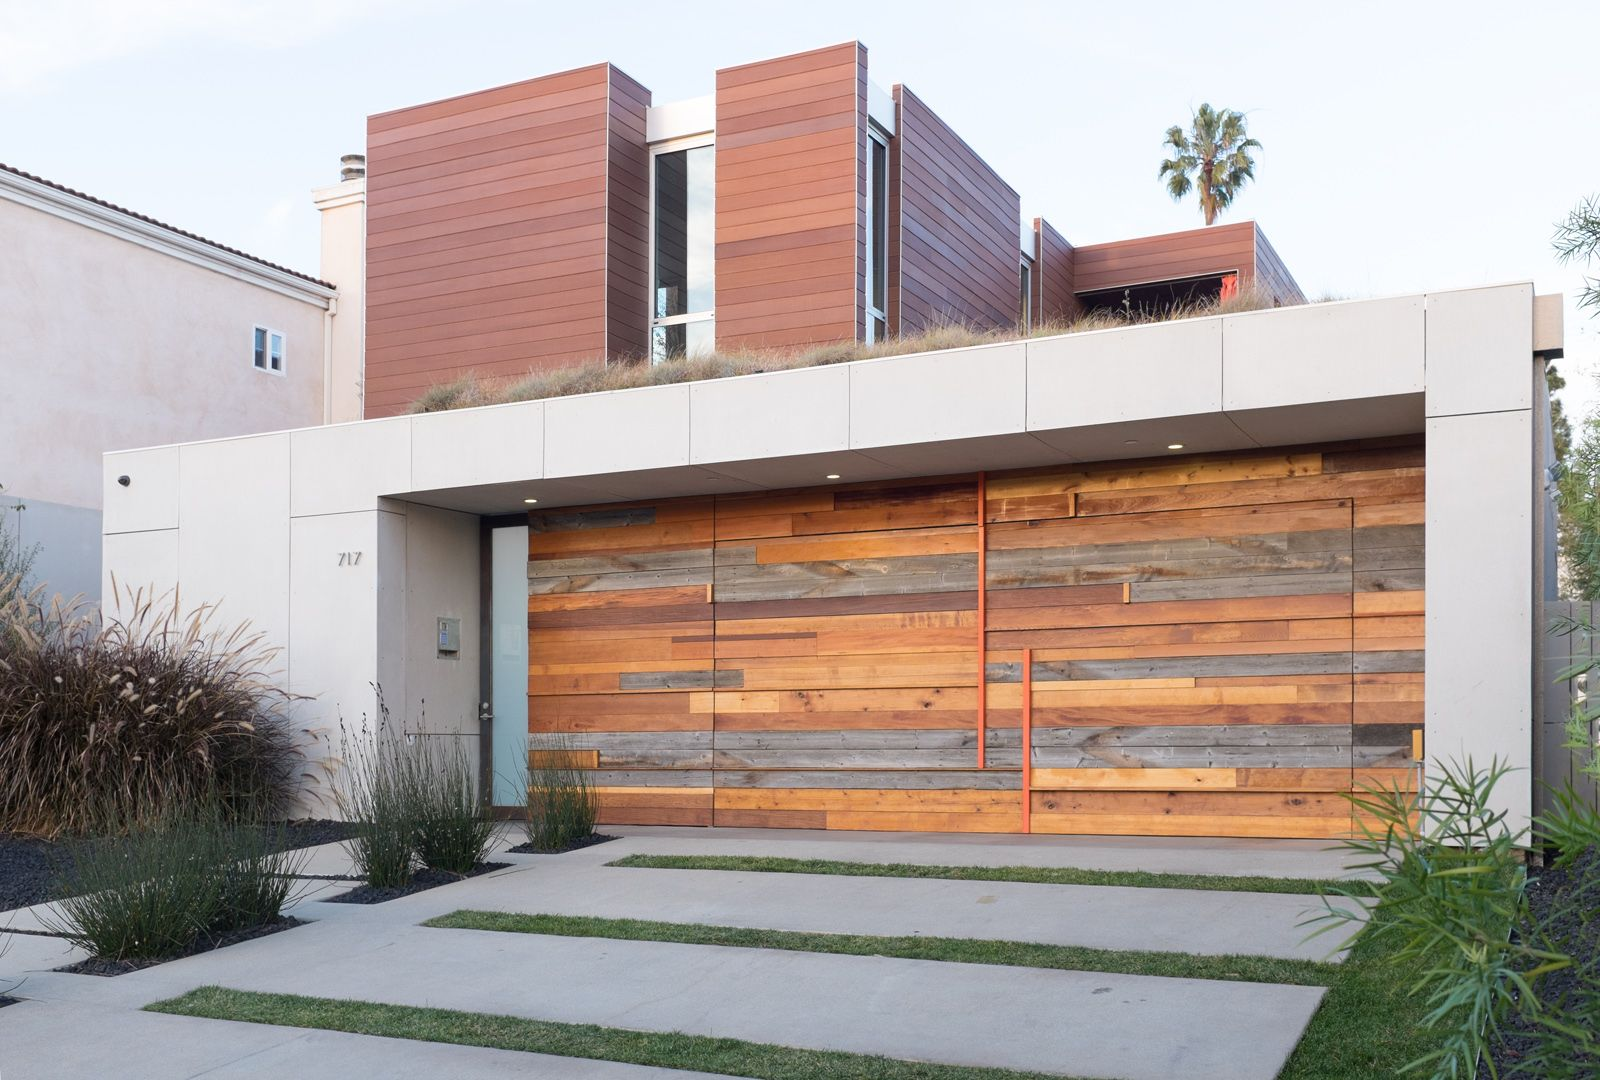 A Unique And Modern Garage Door Made From New And Reclaimed Wood